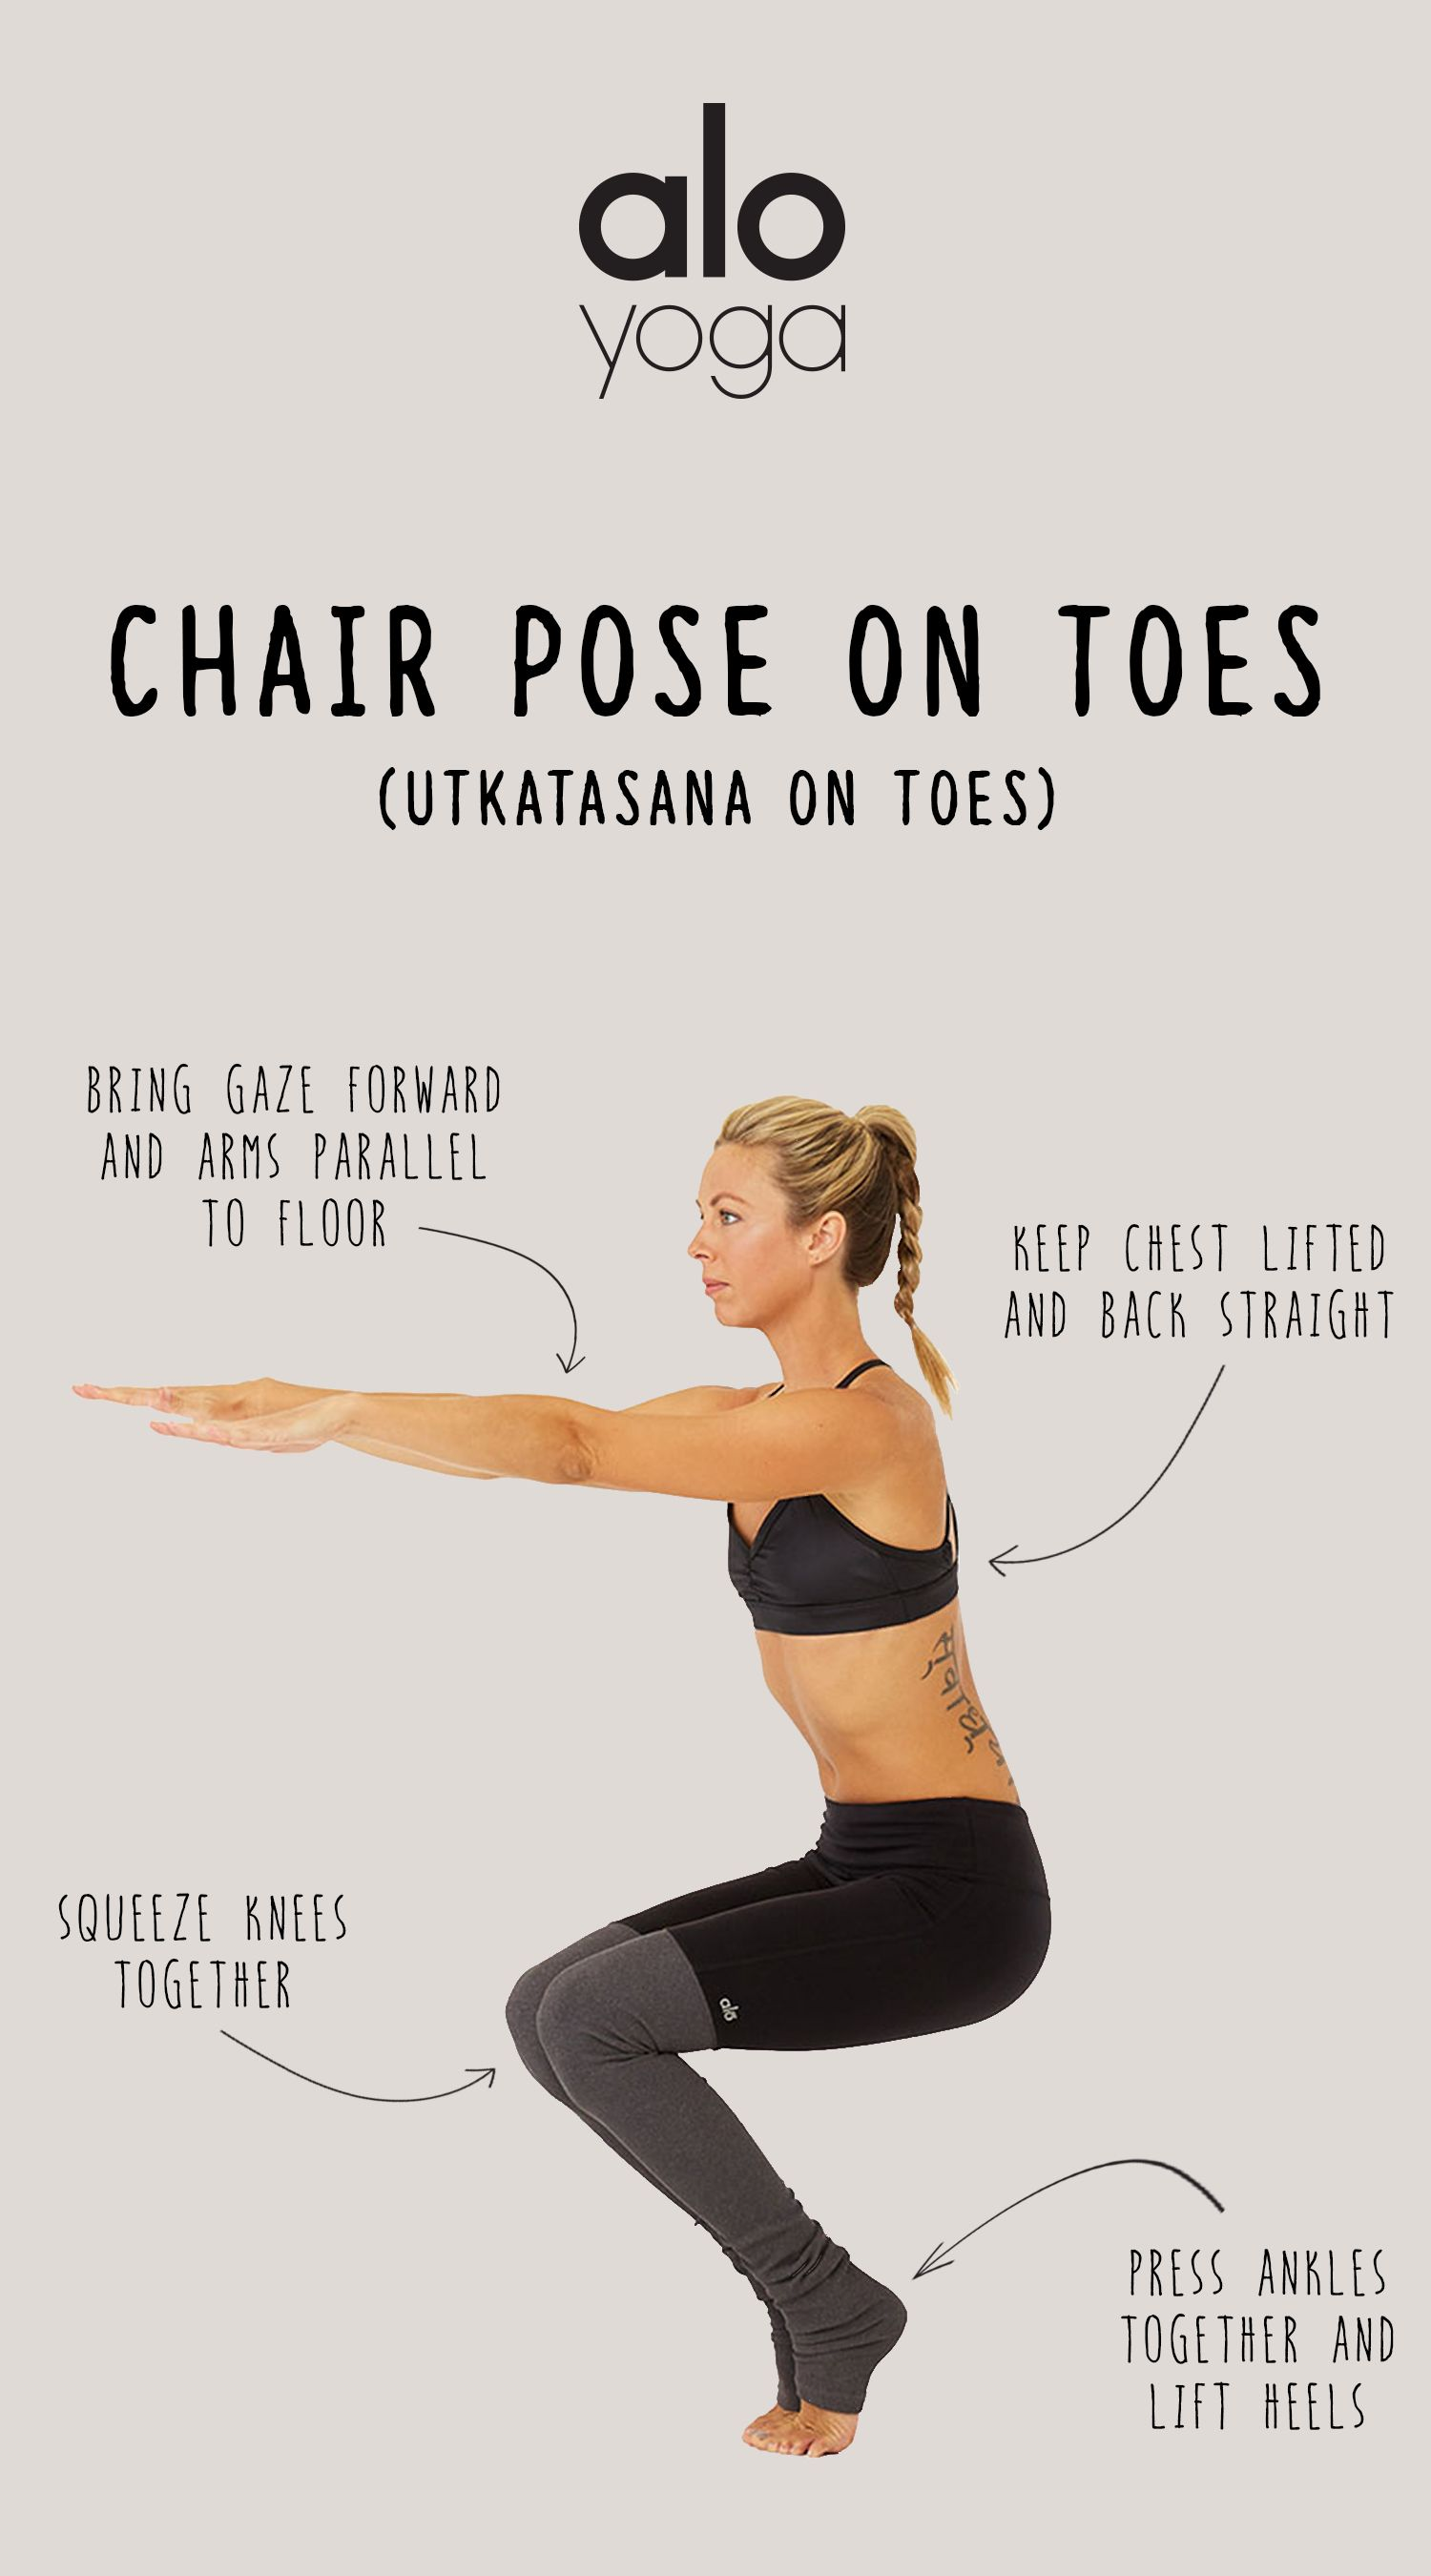 How To: Chair Pose on Toes #yoga #yogagoals #chairpose #yogainspiration